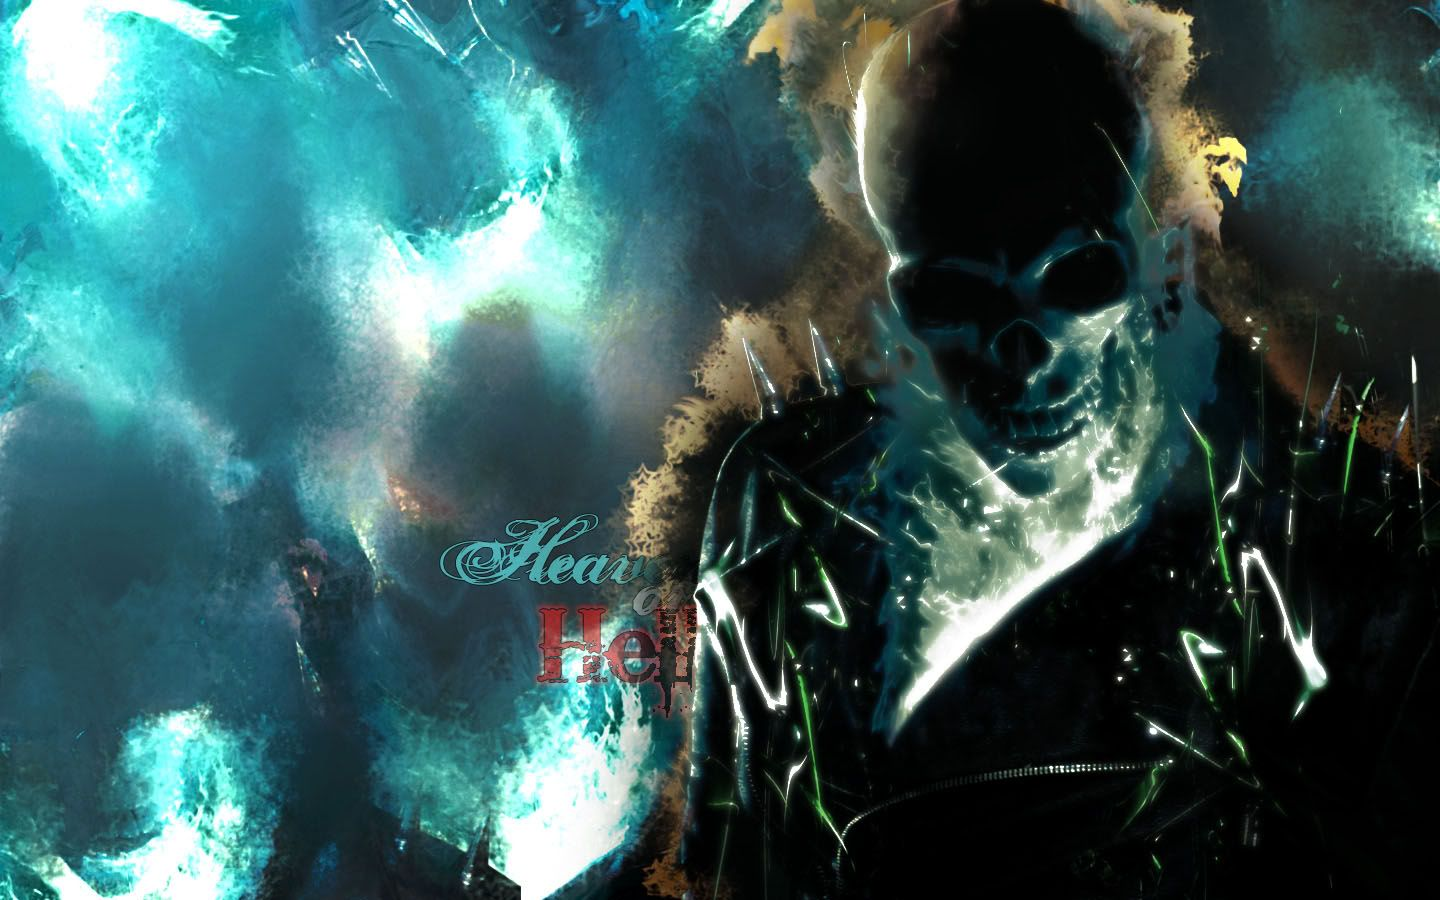 Wide HD Ghost Rider Wallpaper  FLGX HD   Ghost Rider Wallpapers  Wallpaper  1440x900